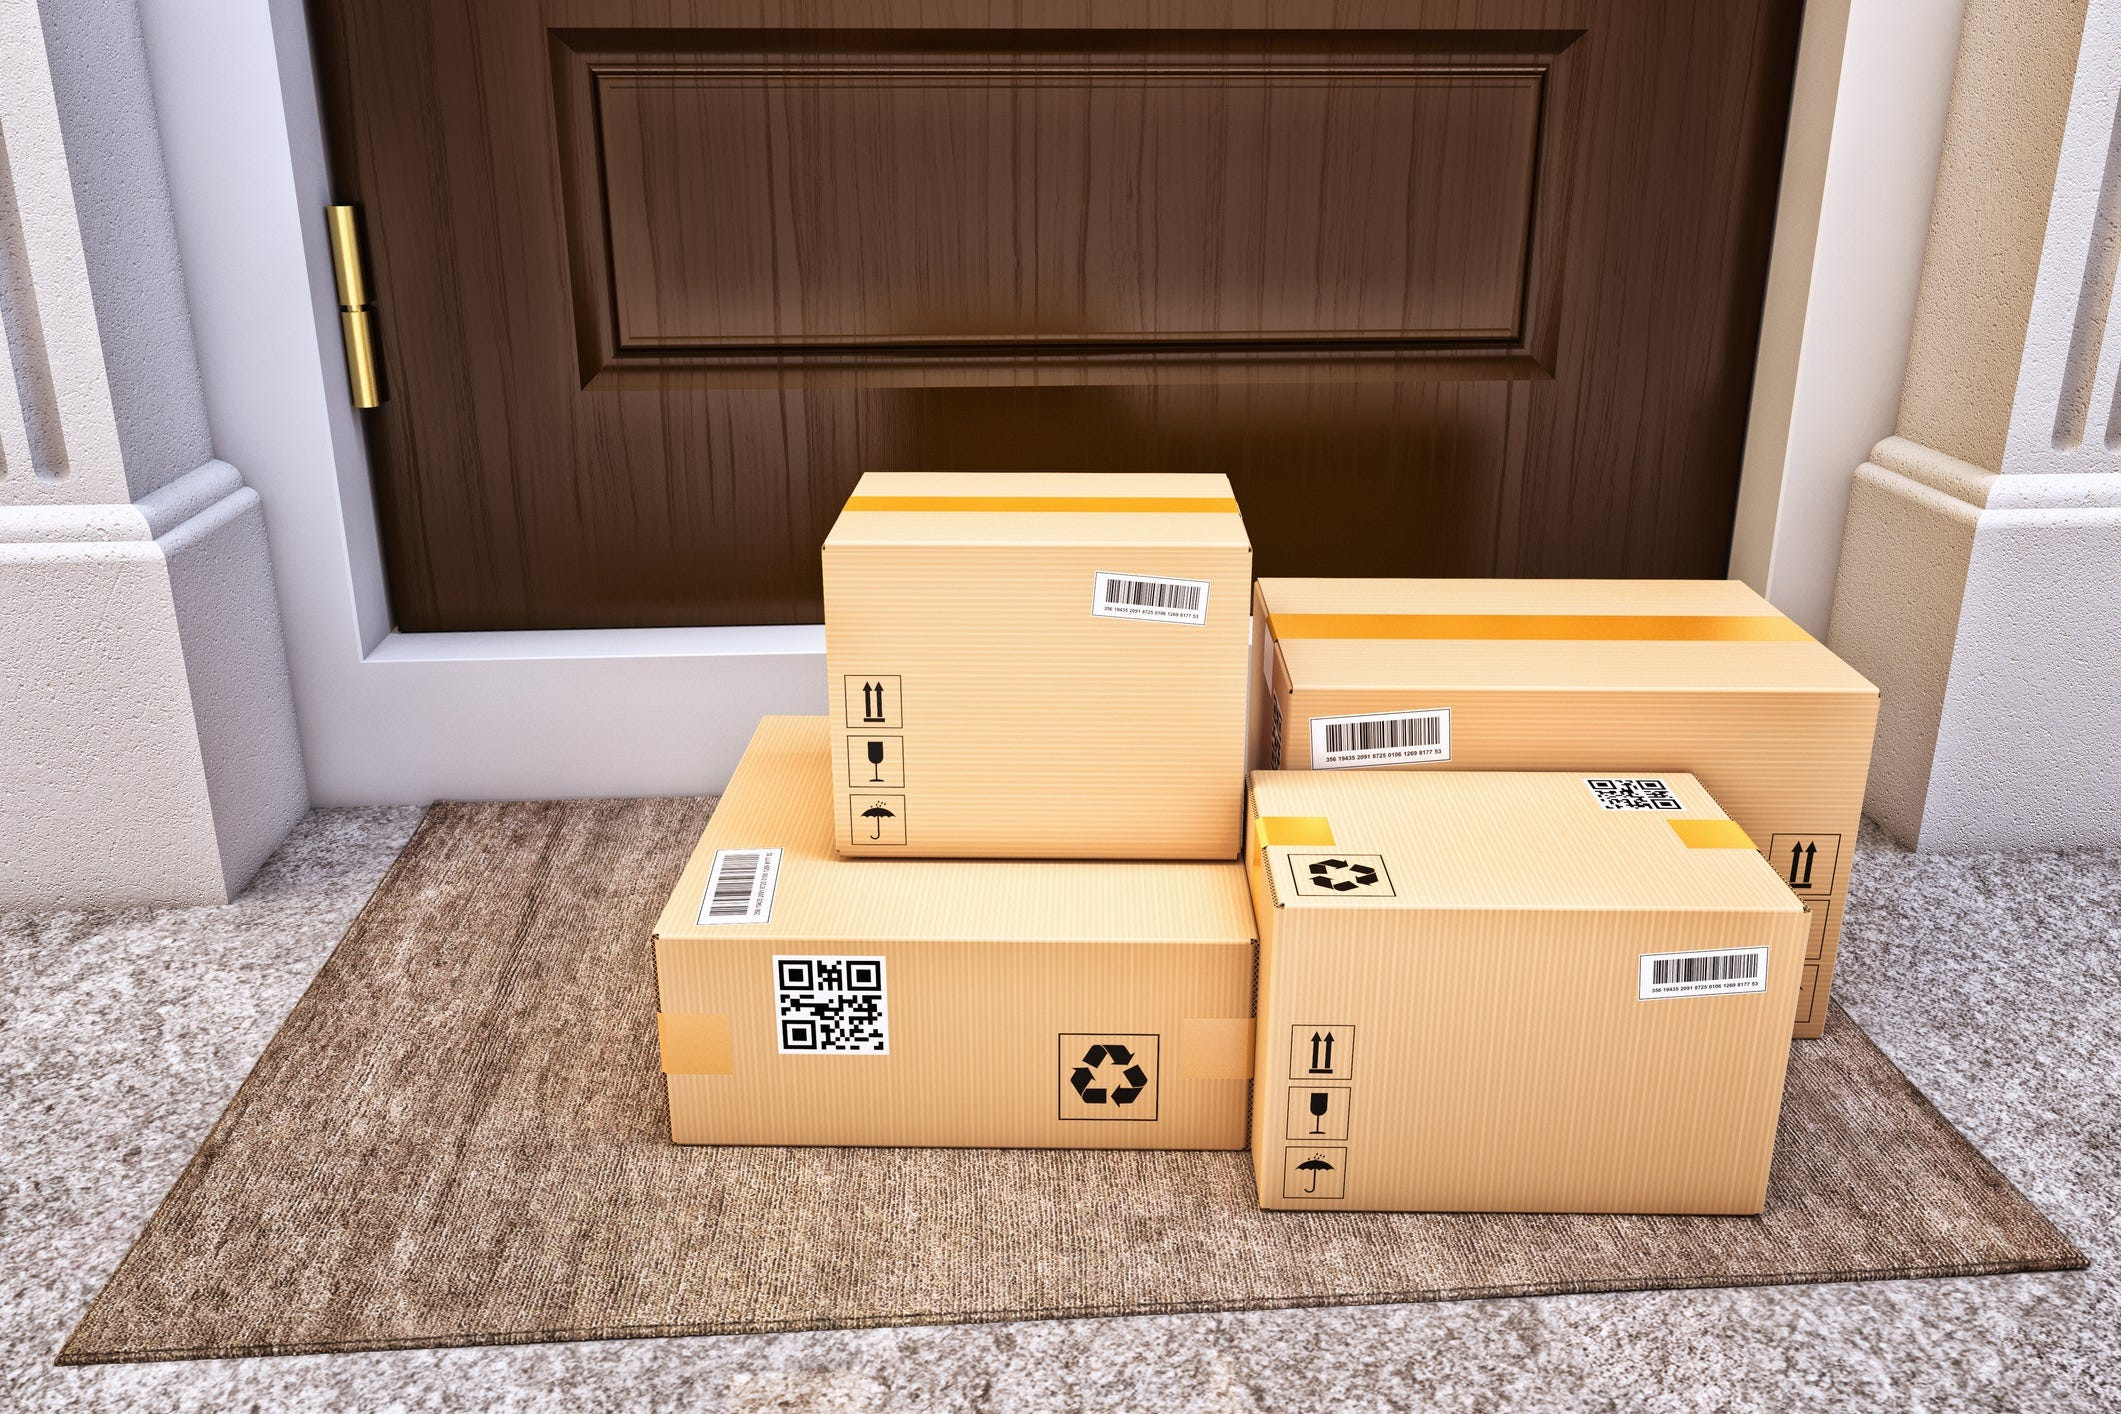 Will COVID vaccine shipments delay your holiday gifts? Prepare for Shipageddon 2020 by sending packages ASAP